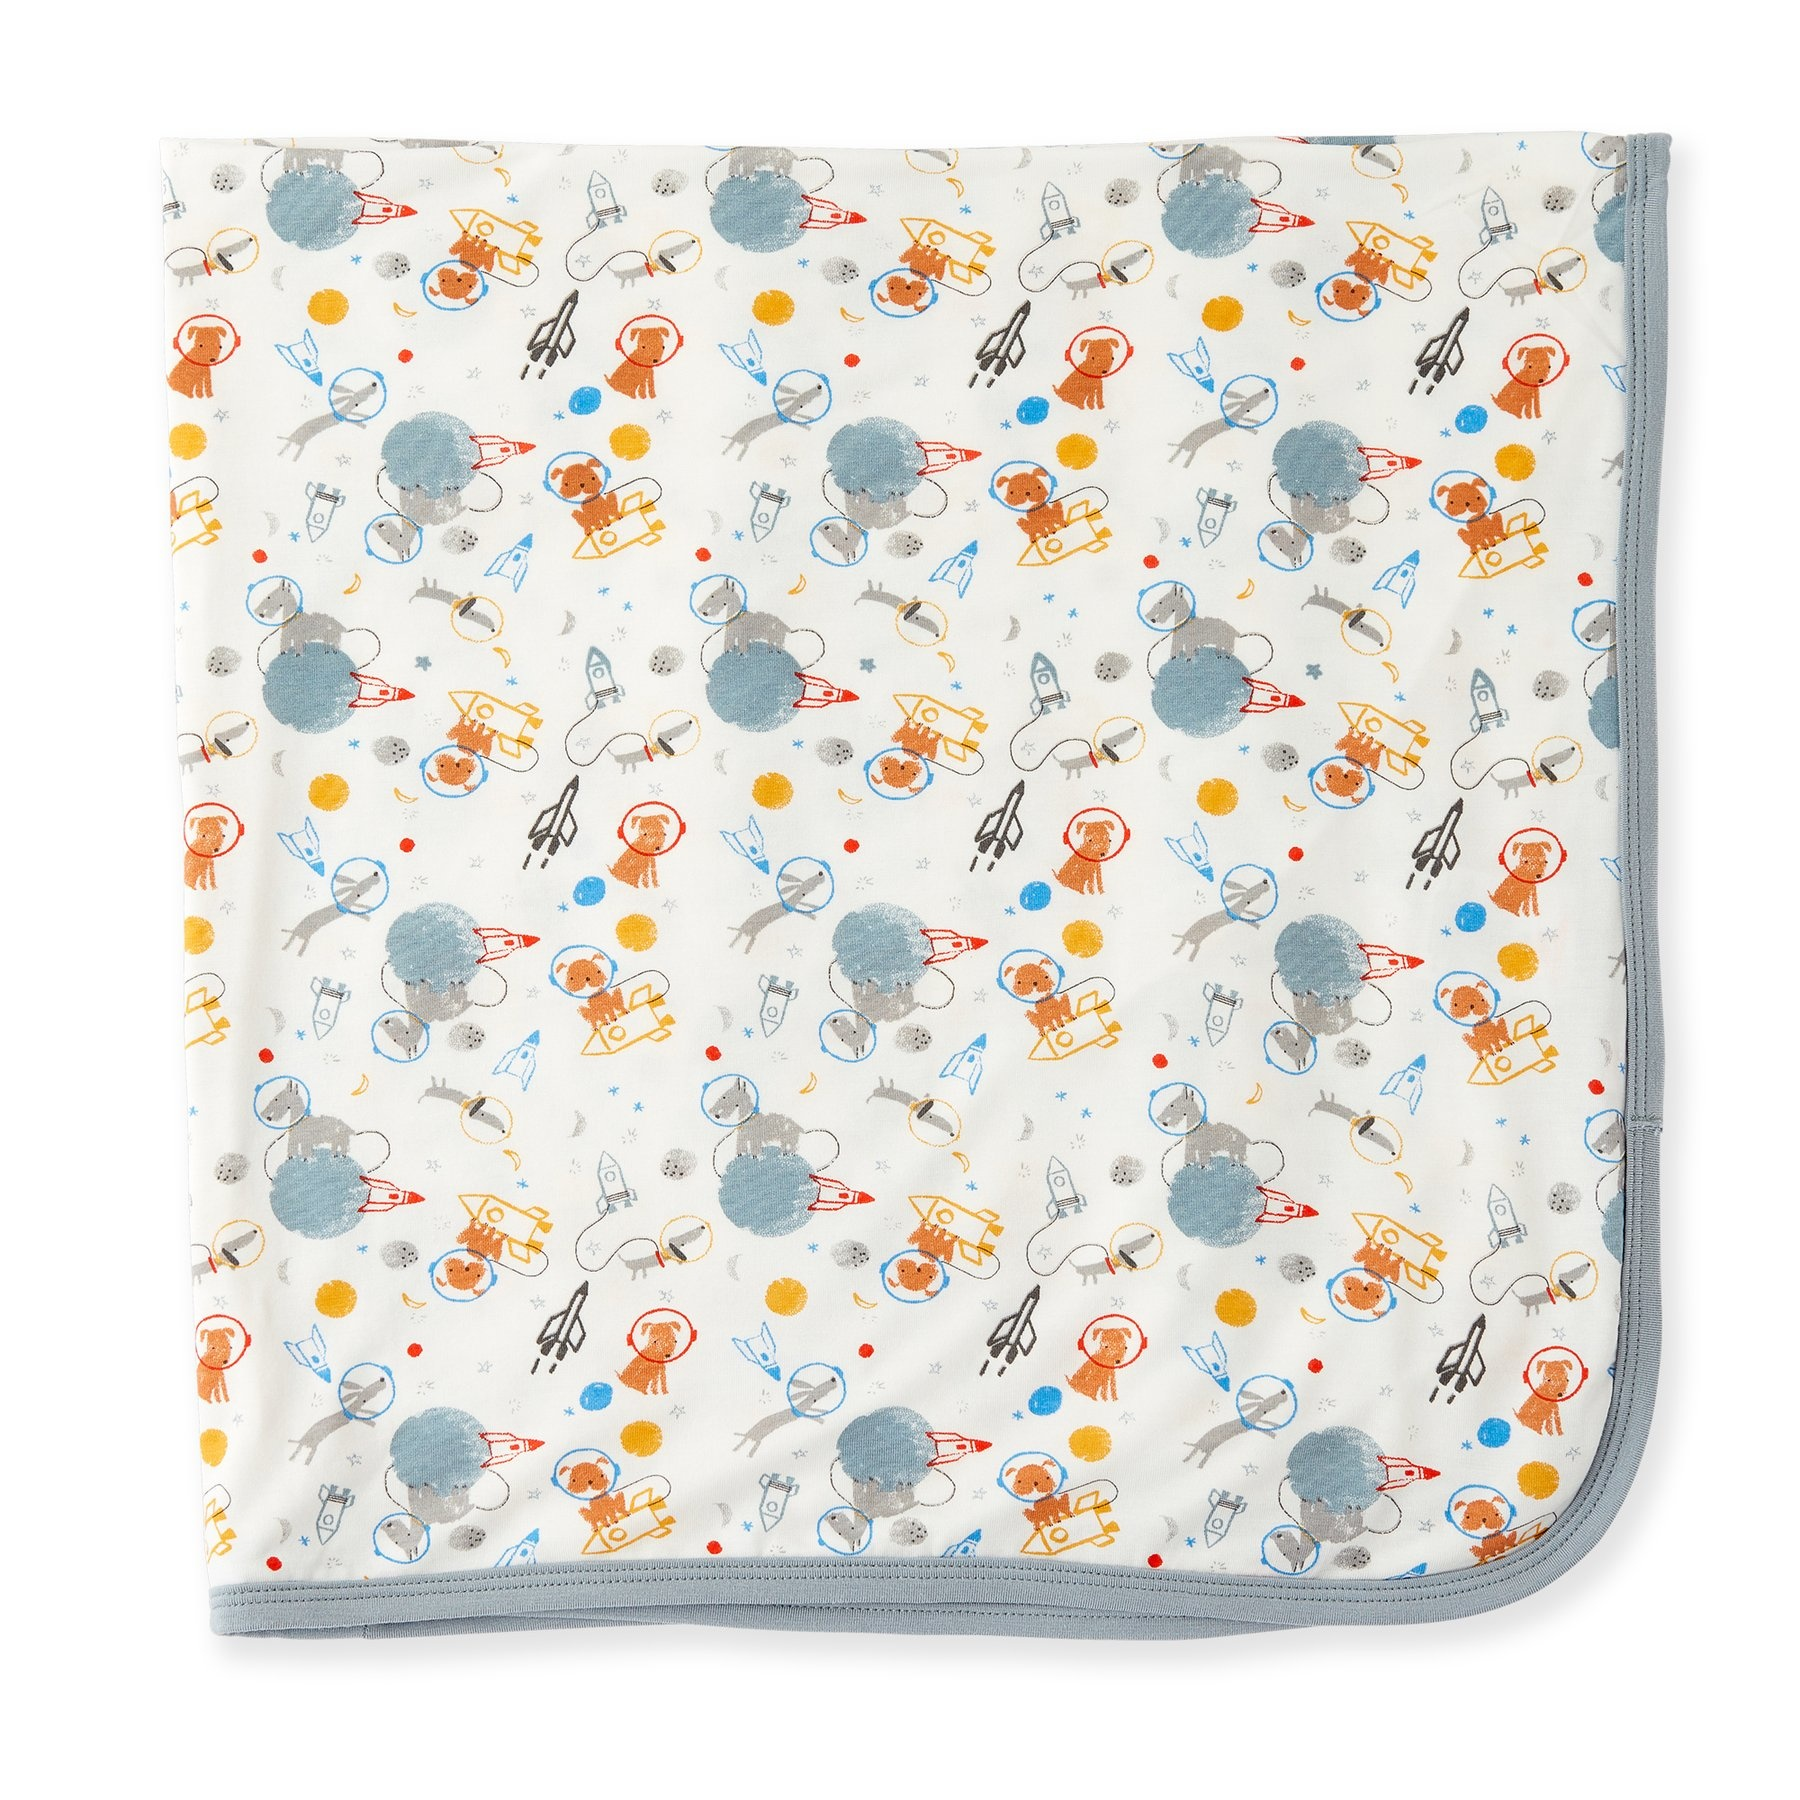 Magnificent Baby Astro Pups Modal Swaddle Blanket